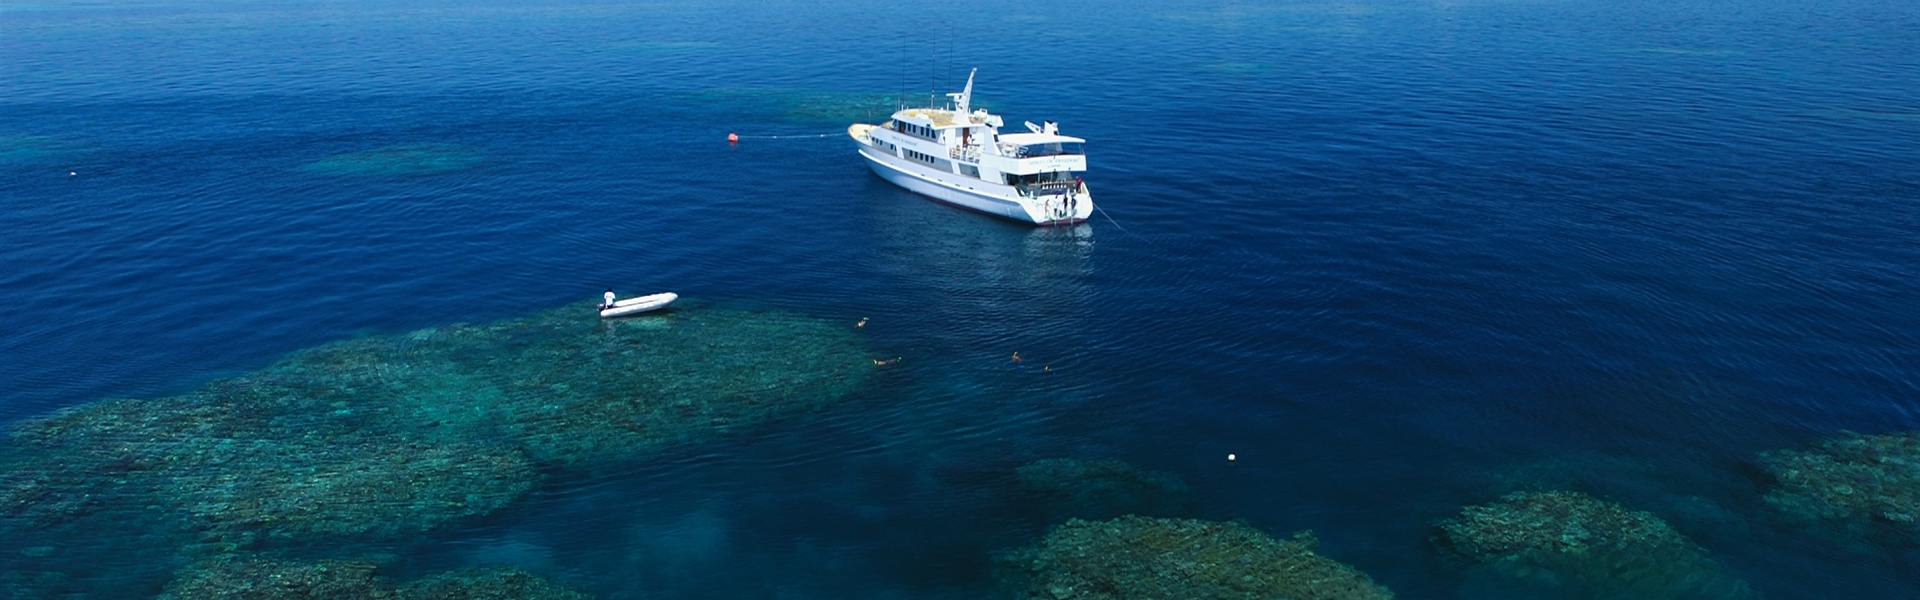 Reef and vessel